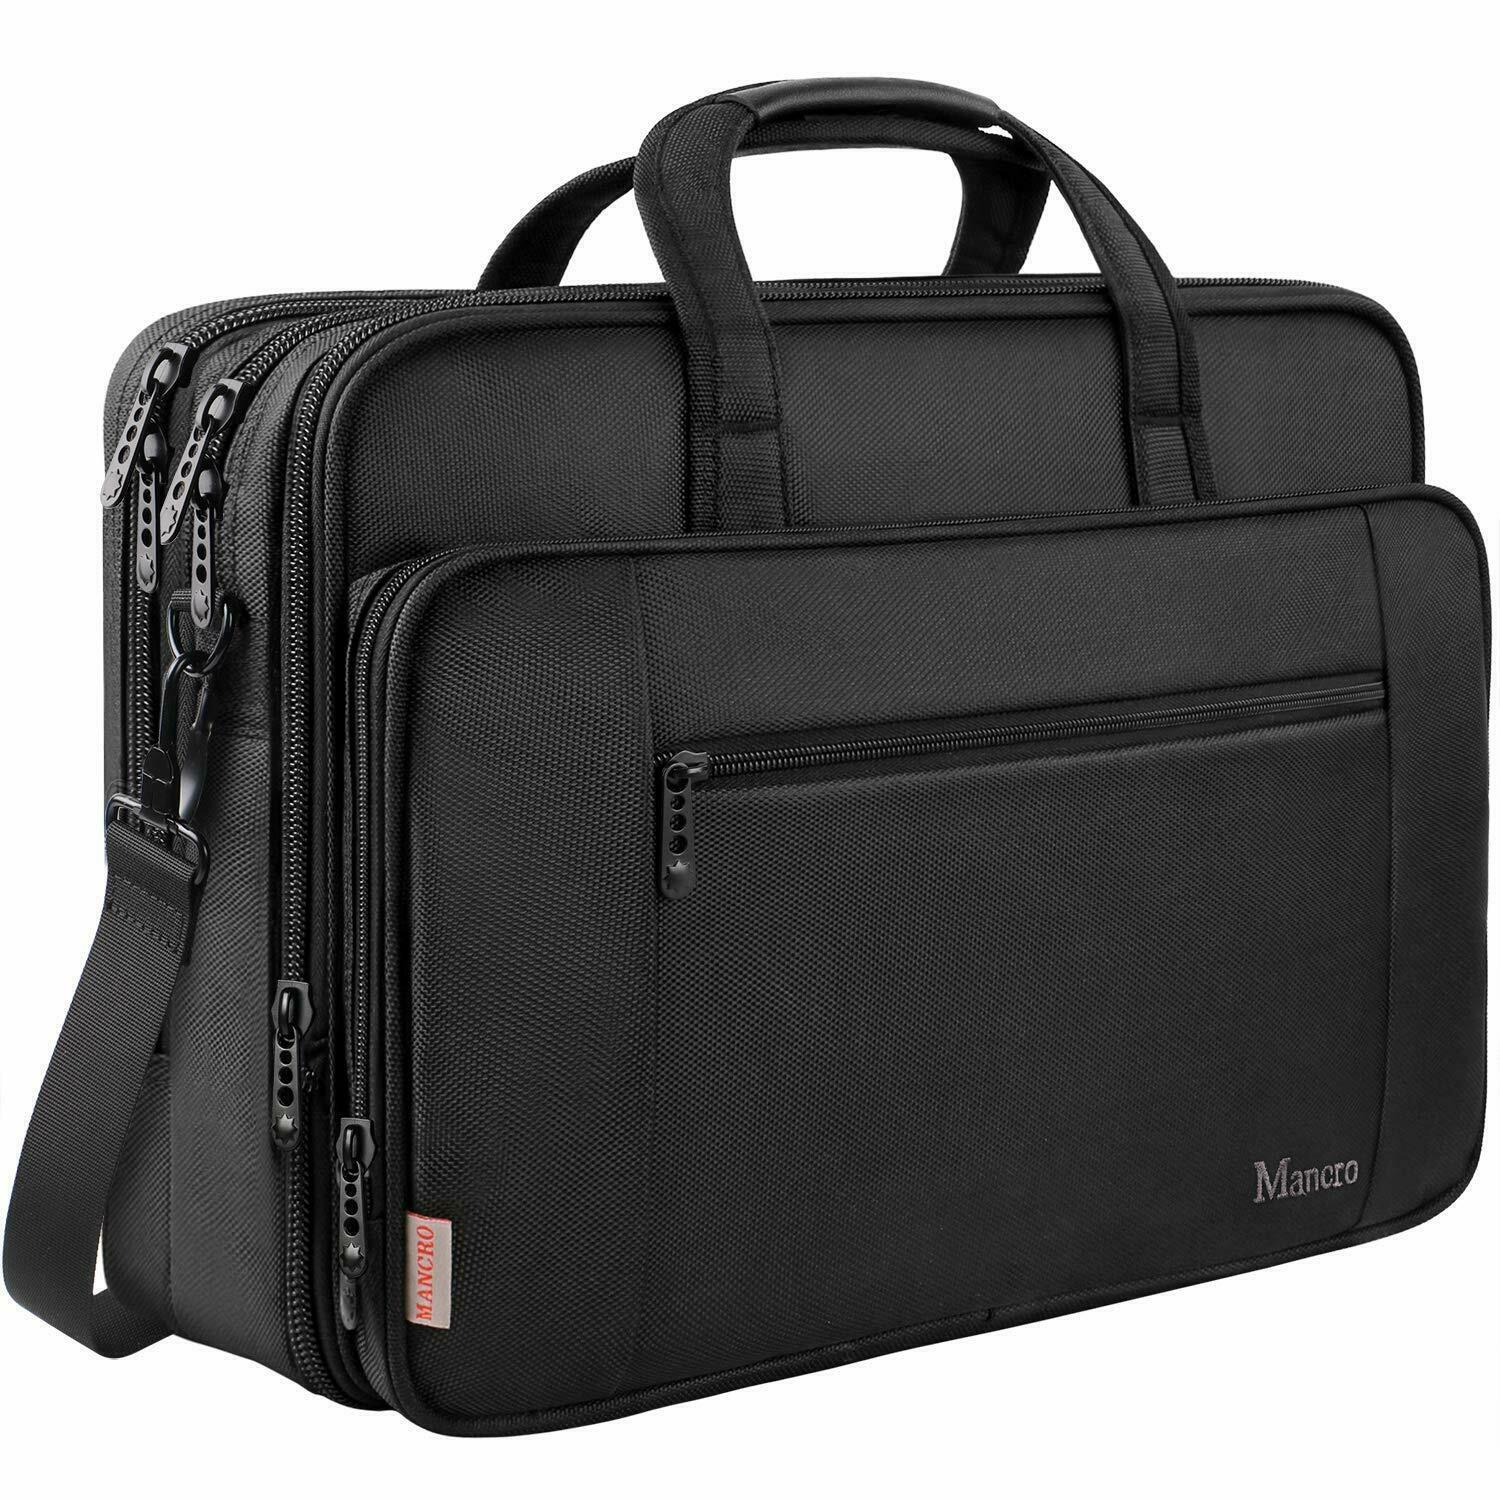 Laptop Briefcase Bag, 17 inch Laptop Bag for Men Women, Wate